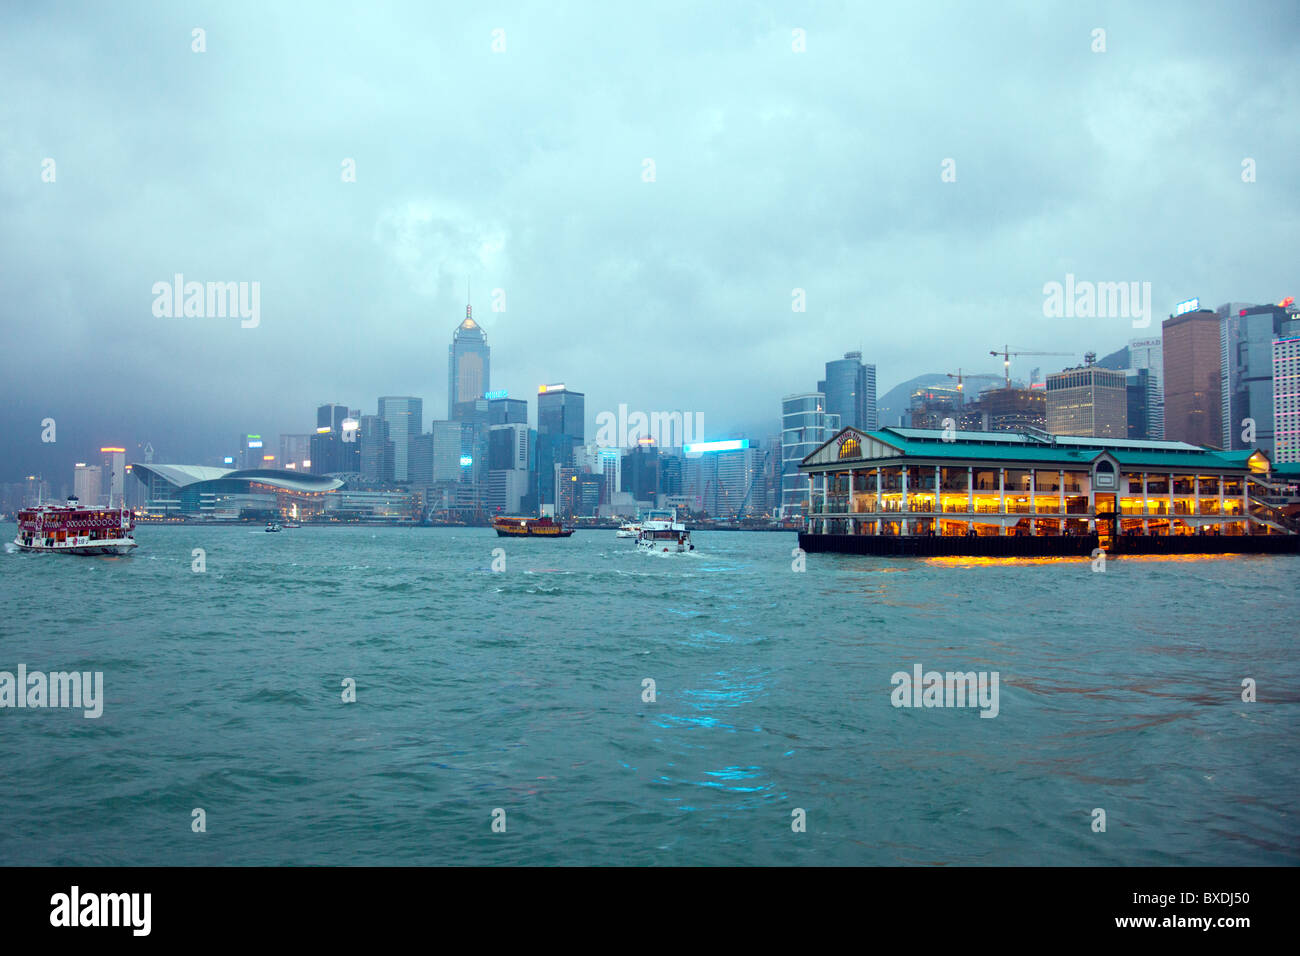 The amazing Hong Kong skyline as seen from Kowloon. The imposing structures include the mooring Stock Photo